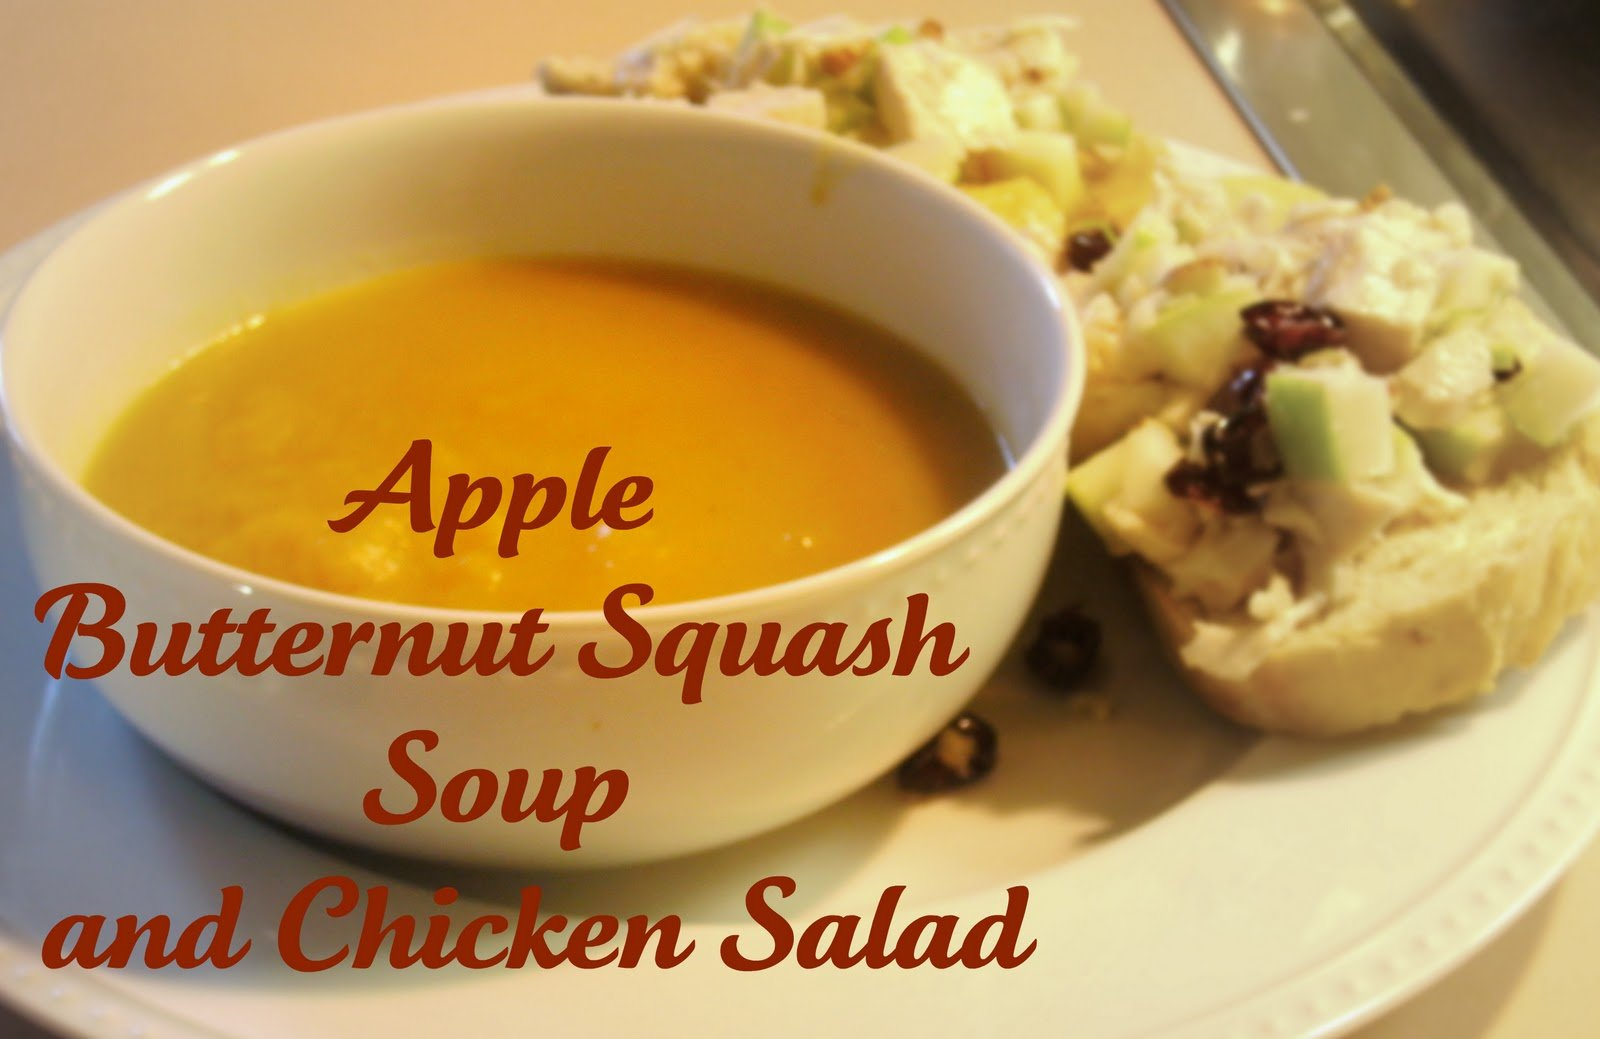 Apple Butternut Squash Soup and Chicken Salad Sandwiches.